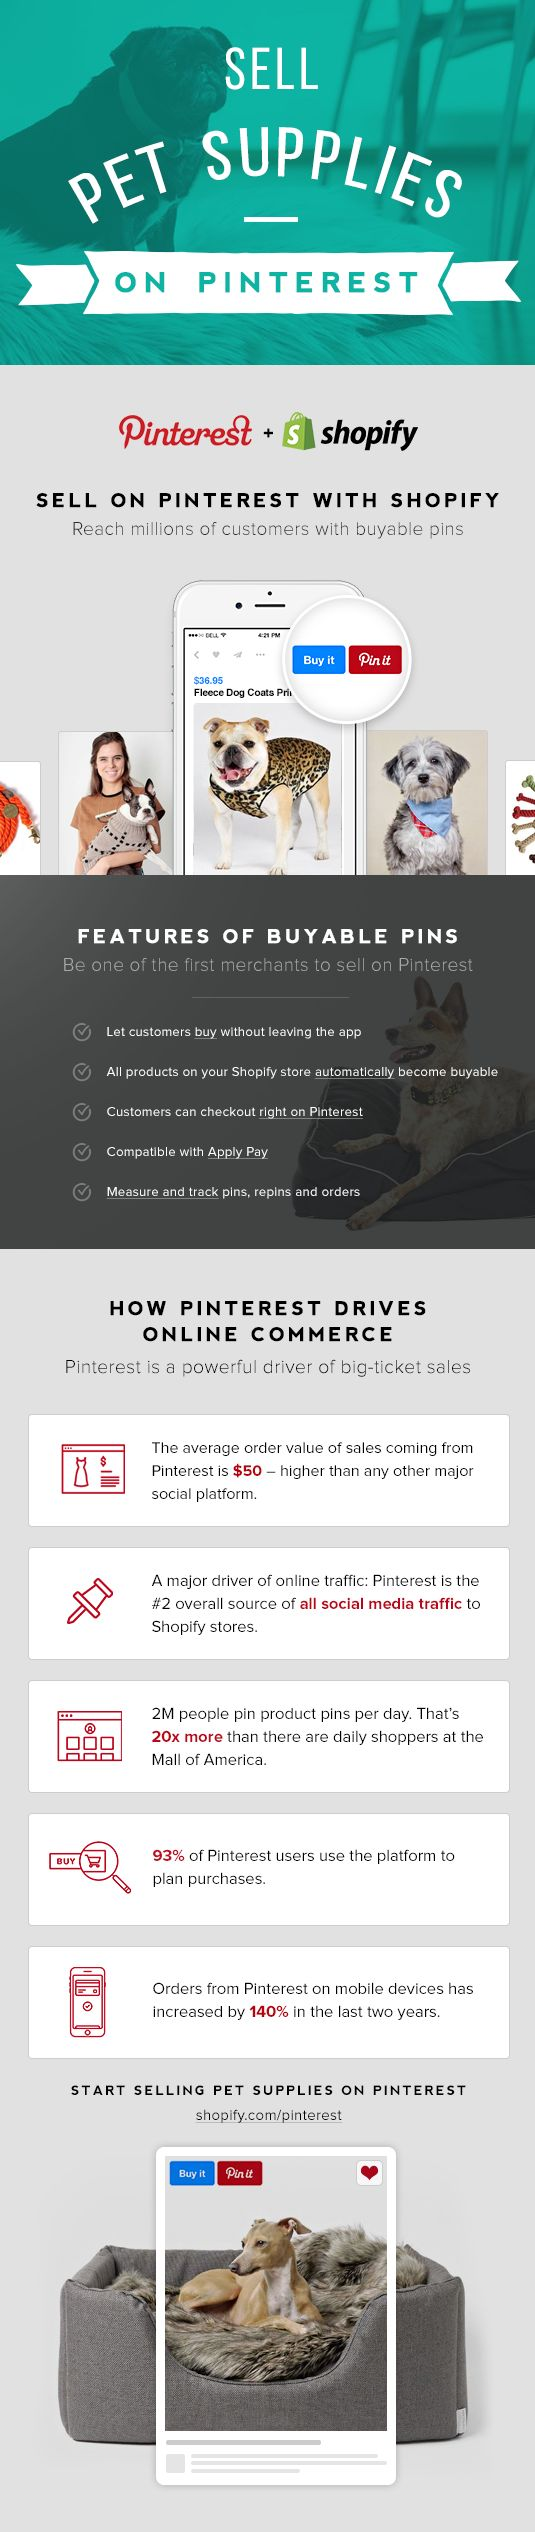 Sell pet supplies on Pinterest with Buyable Pins